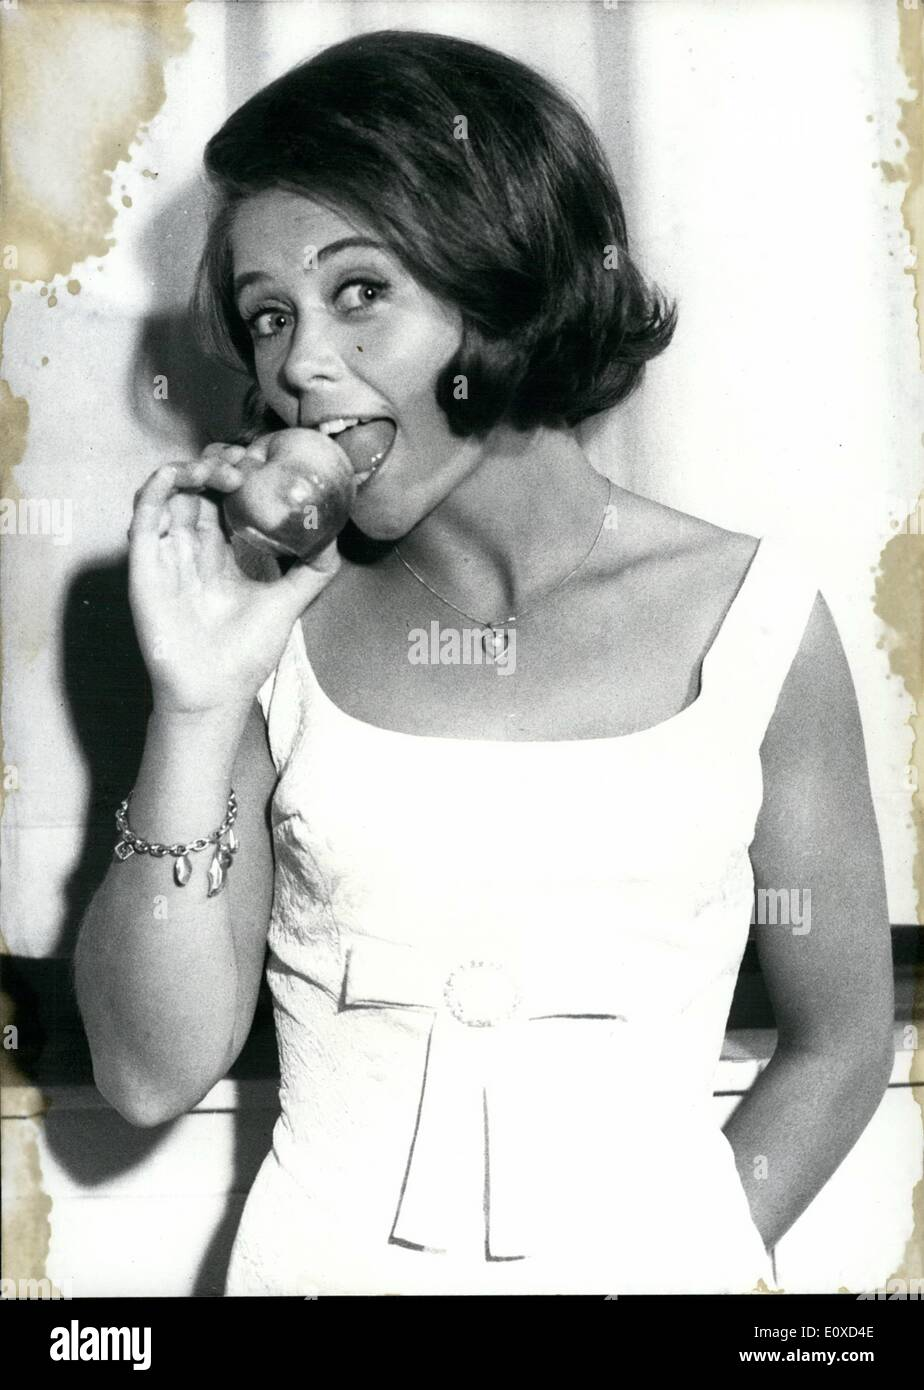 Jun. 06, 1966 - Bei nicht gleich in jeden Apfel'': (don't bite at once at each apple) warned Wencke Myhre with her victory-song in the course of the final decision of the ''6. German Hit-Festival 1966'' in Baden-baden. But she herself did not comply with this advice, for she bit at many apples in order to please the photographers - Stock Image